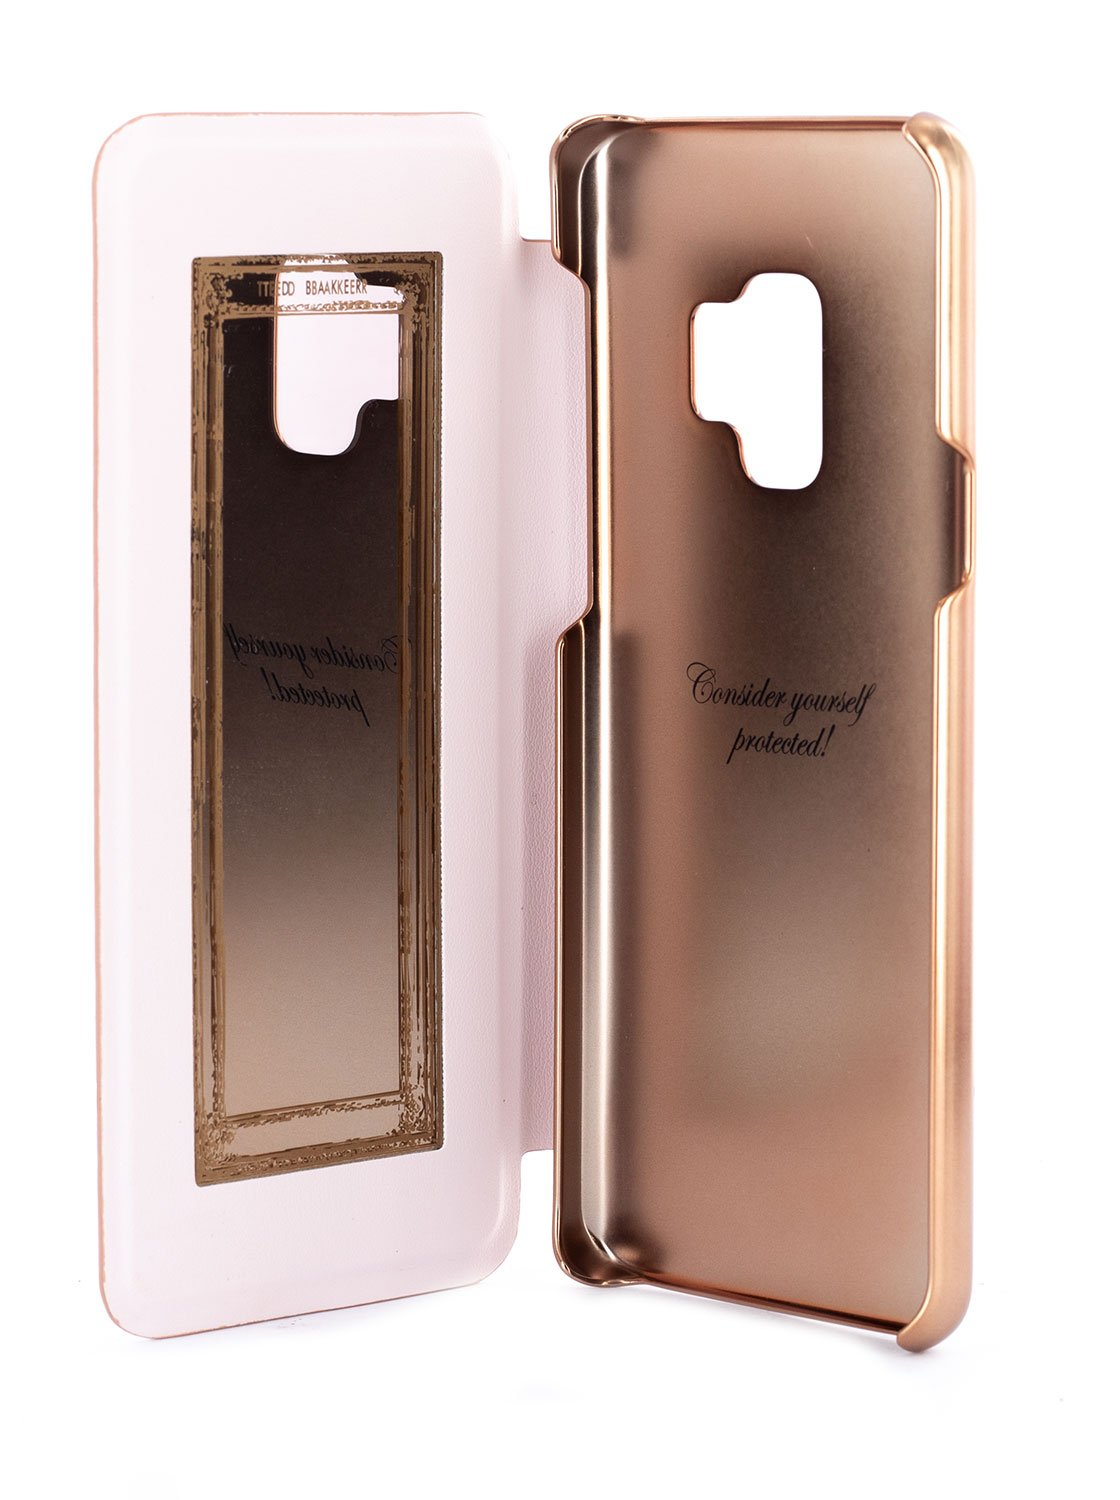 Inside image of the Ted Baker Samsung Galaxy S9 phone case in Rose Gold